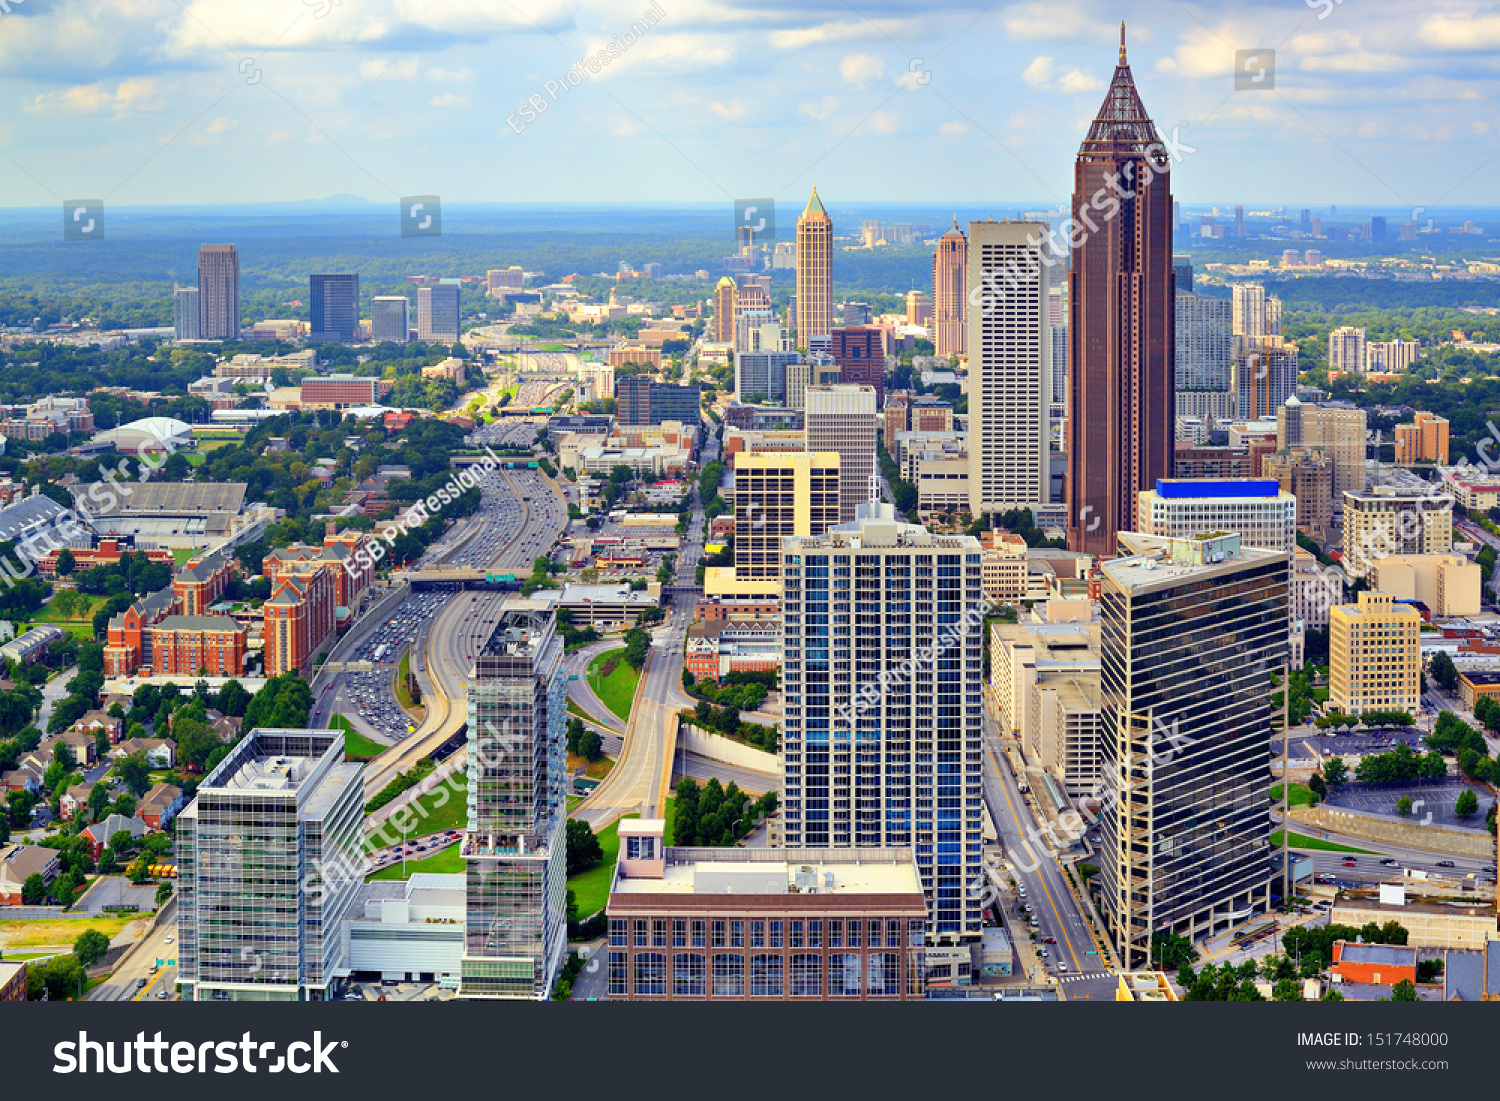 downtown atlanta georgia usa skyline stock photo 151748000 shutterstock. Black Bedroom Furniture Sets. Home Design Ideas